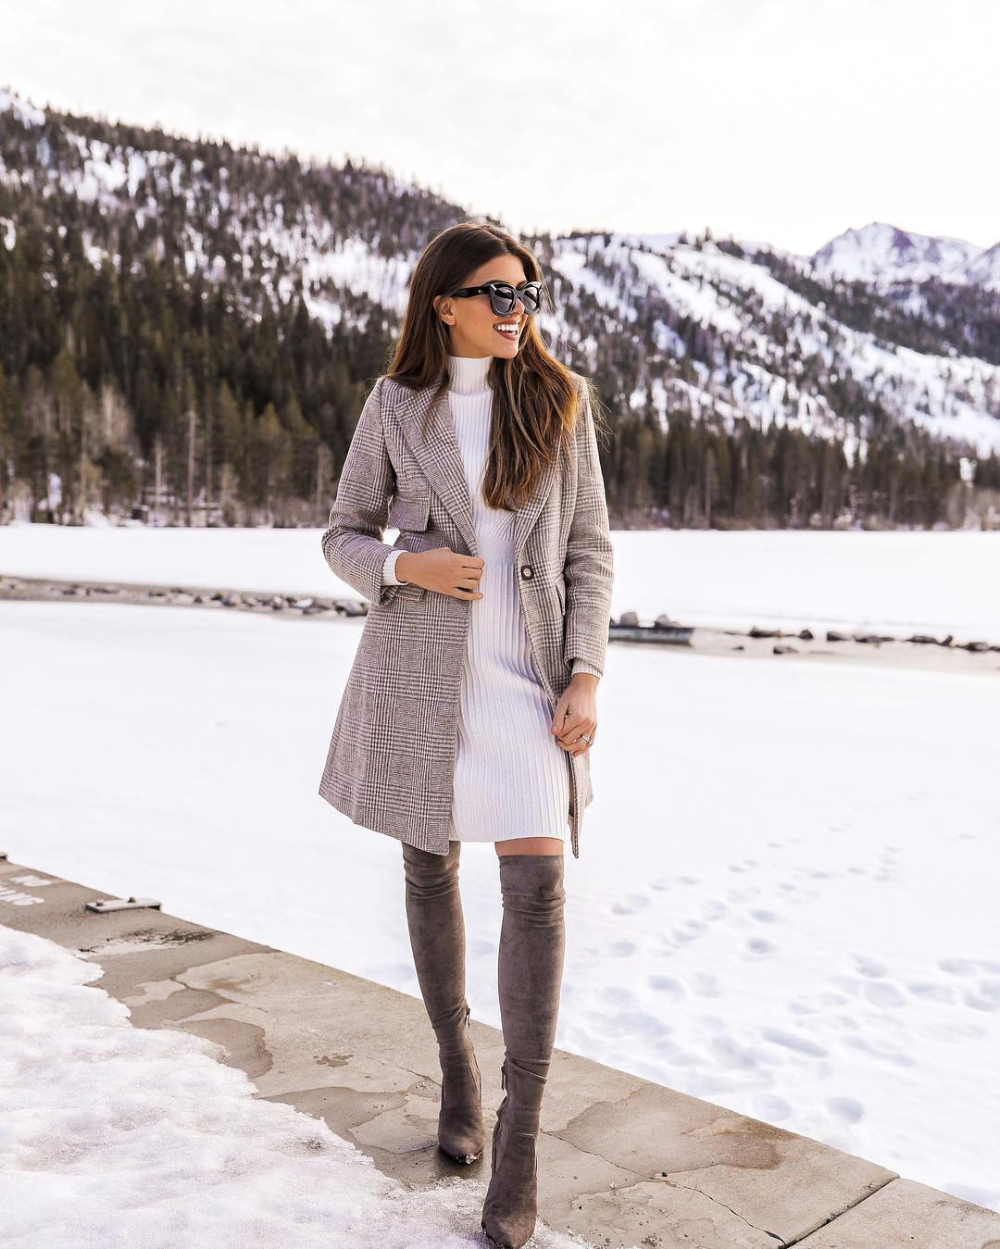 Plaid Structured Coat With White   Turtleneck Dress And OTK Boots Outfit